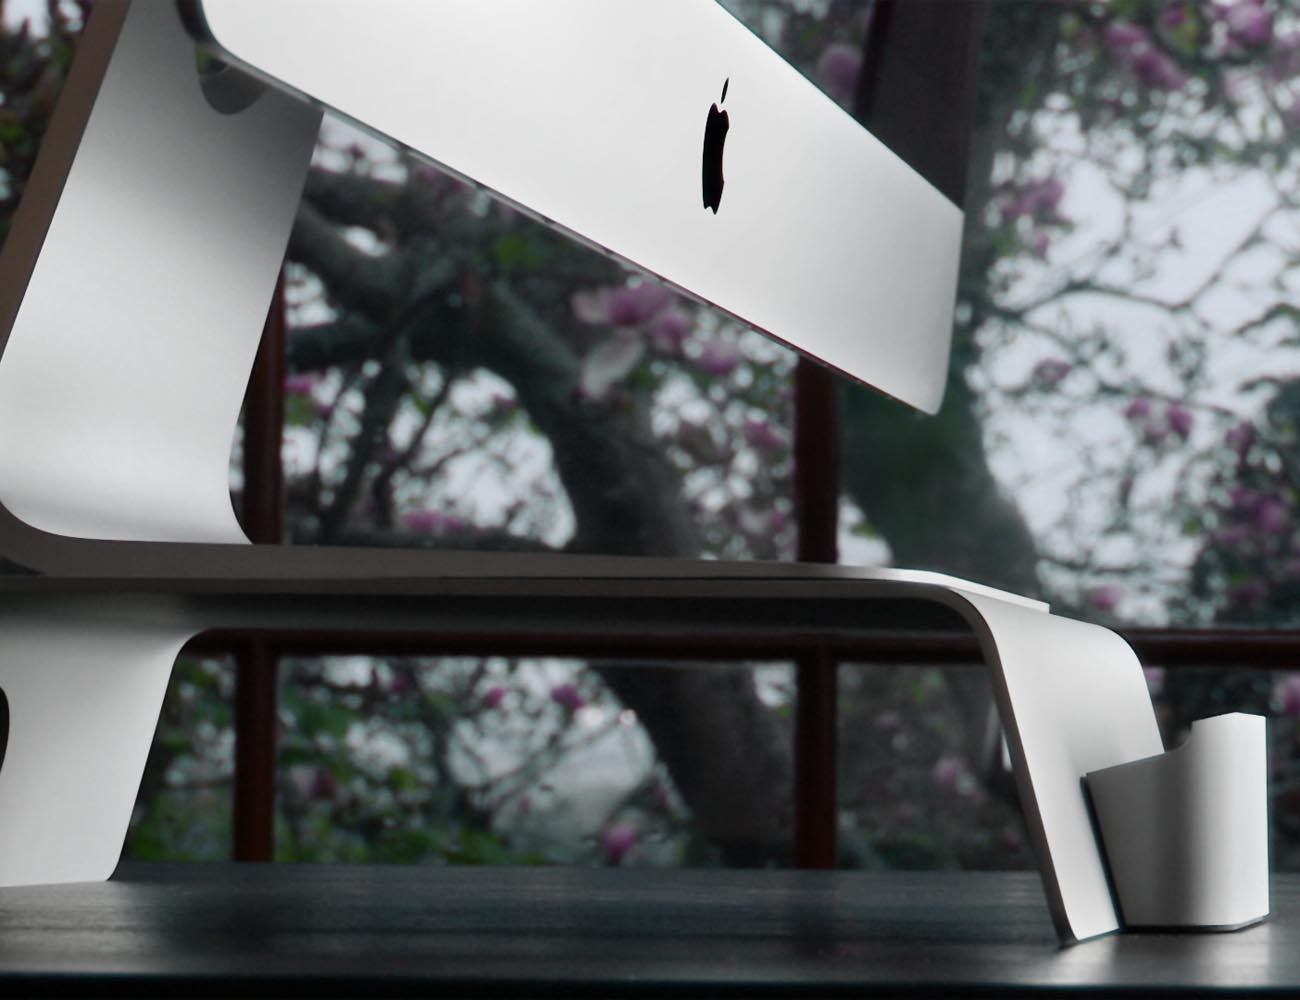 FUSION Stand: A Superb Elevating & Docking Stand for iMacs & Apple Displays